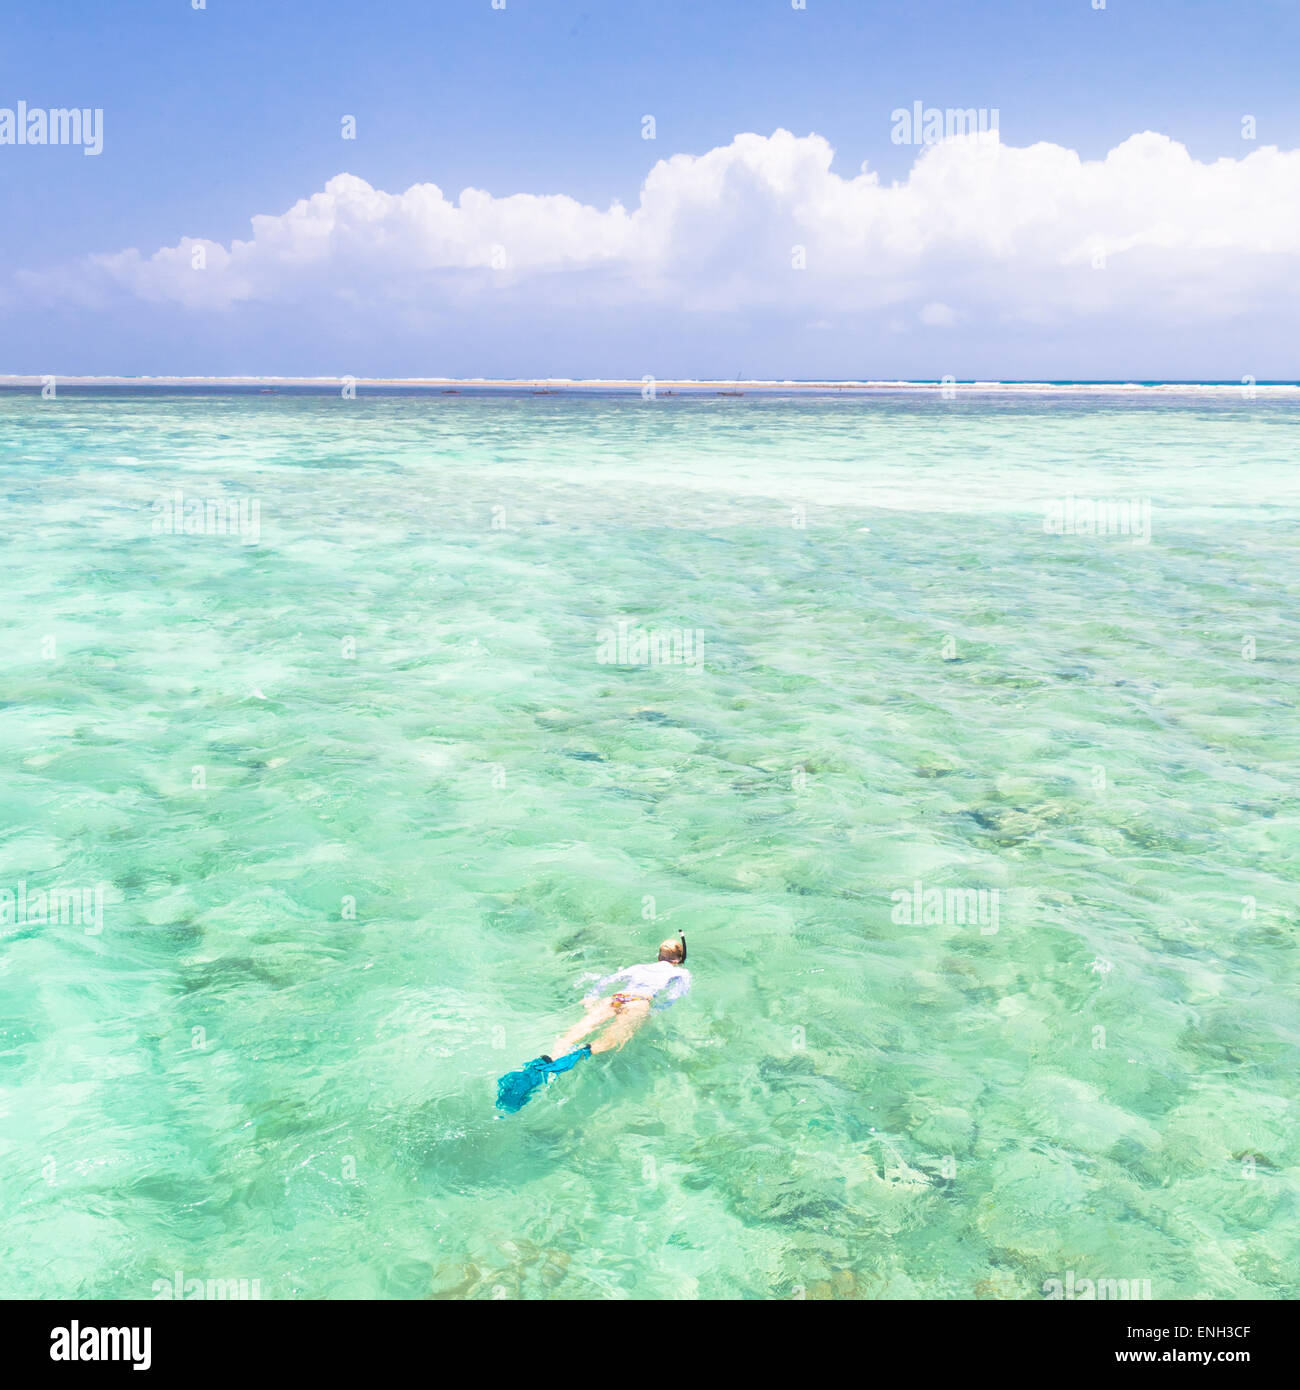 woman snorkeling in turquoise blue sea. - Stock Image